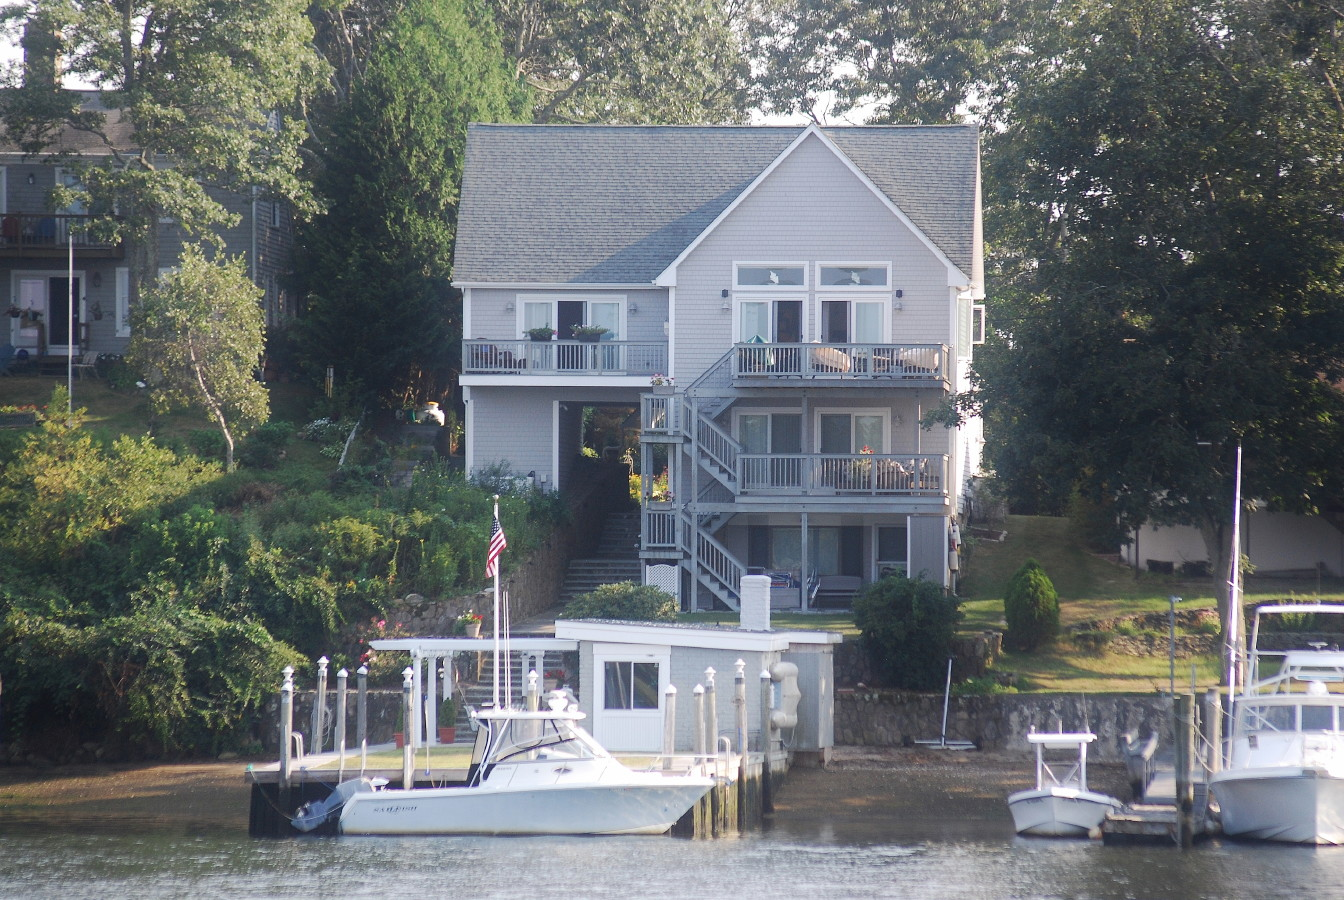 Casa Unifamiliar por un Venta en Boater's Dream 15 Narrows Road Narragansett, Rhode Island 02882 Estados Unidos